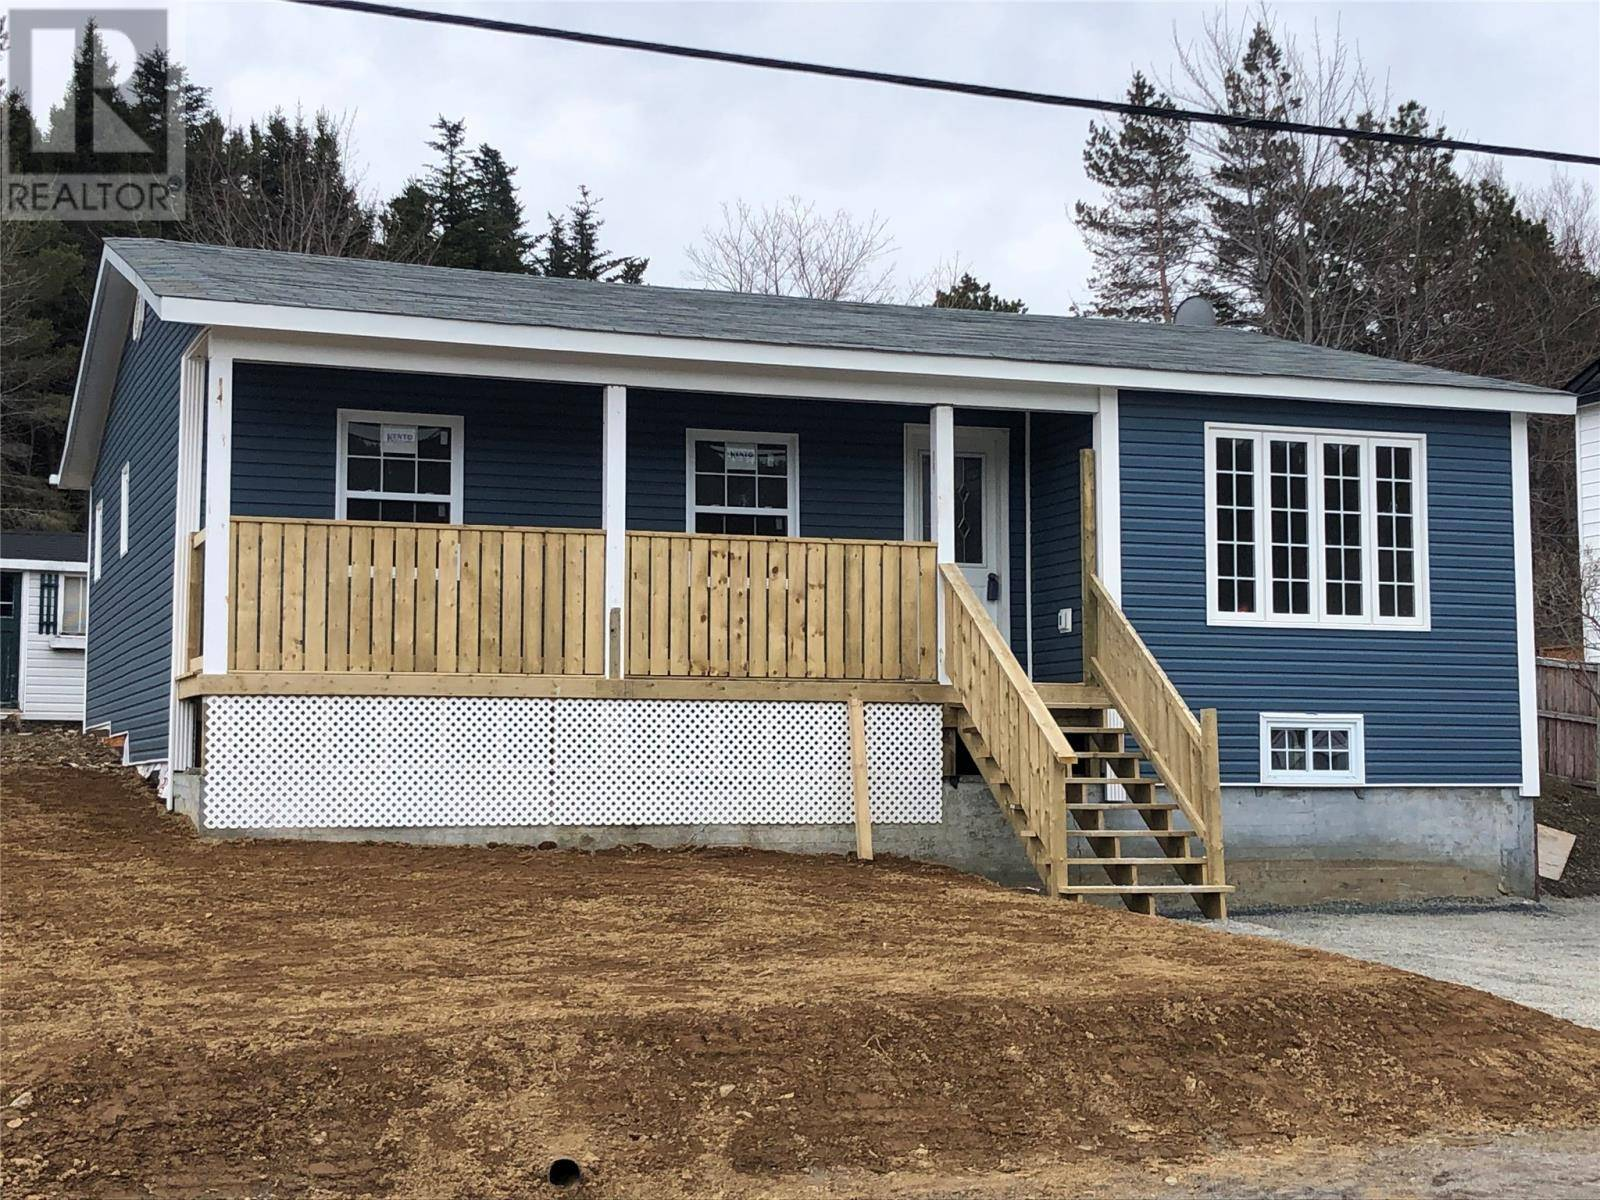 House for sale at 14 Cranes Rd Spaniard's Bay Newfoundland - MLS: 1209095